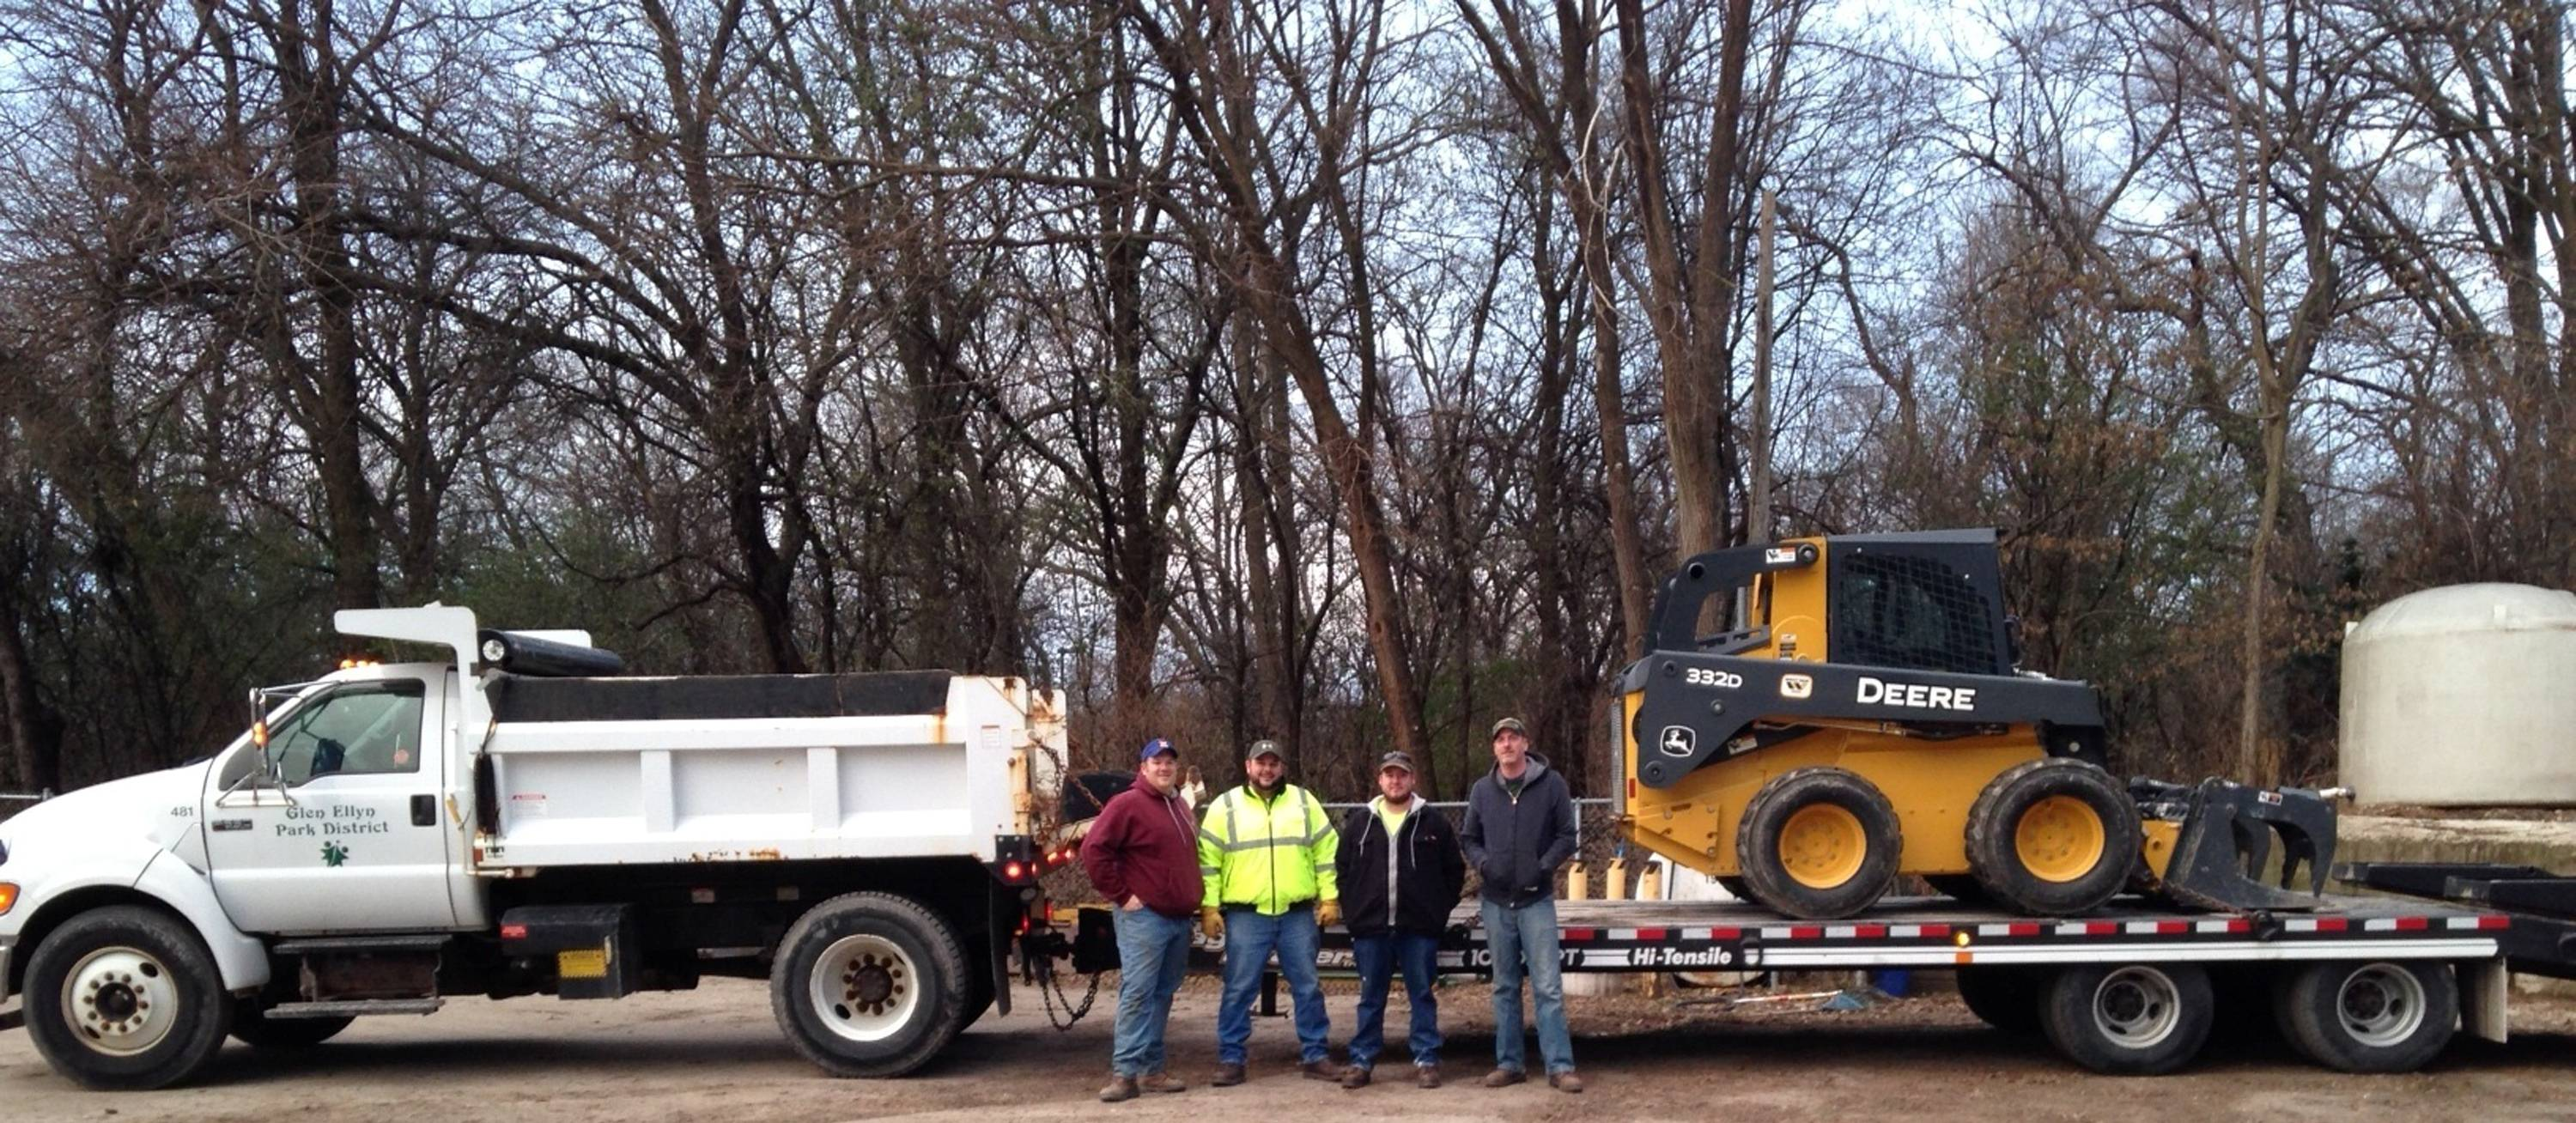 Pictured from left to right: Dave Rajeck, Brian Cannaday, Kevin Blum and Tim Leonard of the Glen Ellyn Park District maintenance staff.